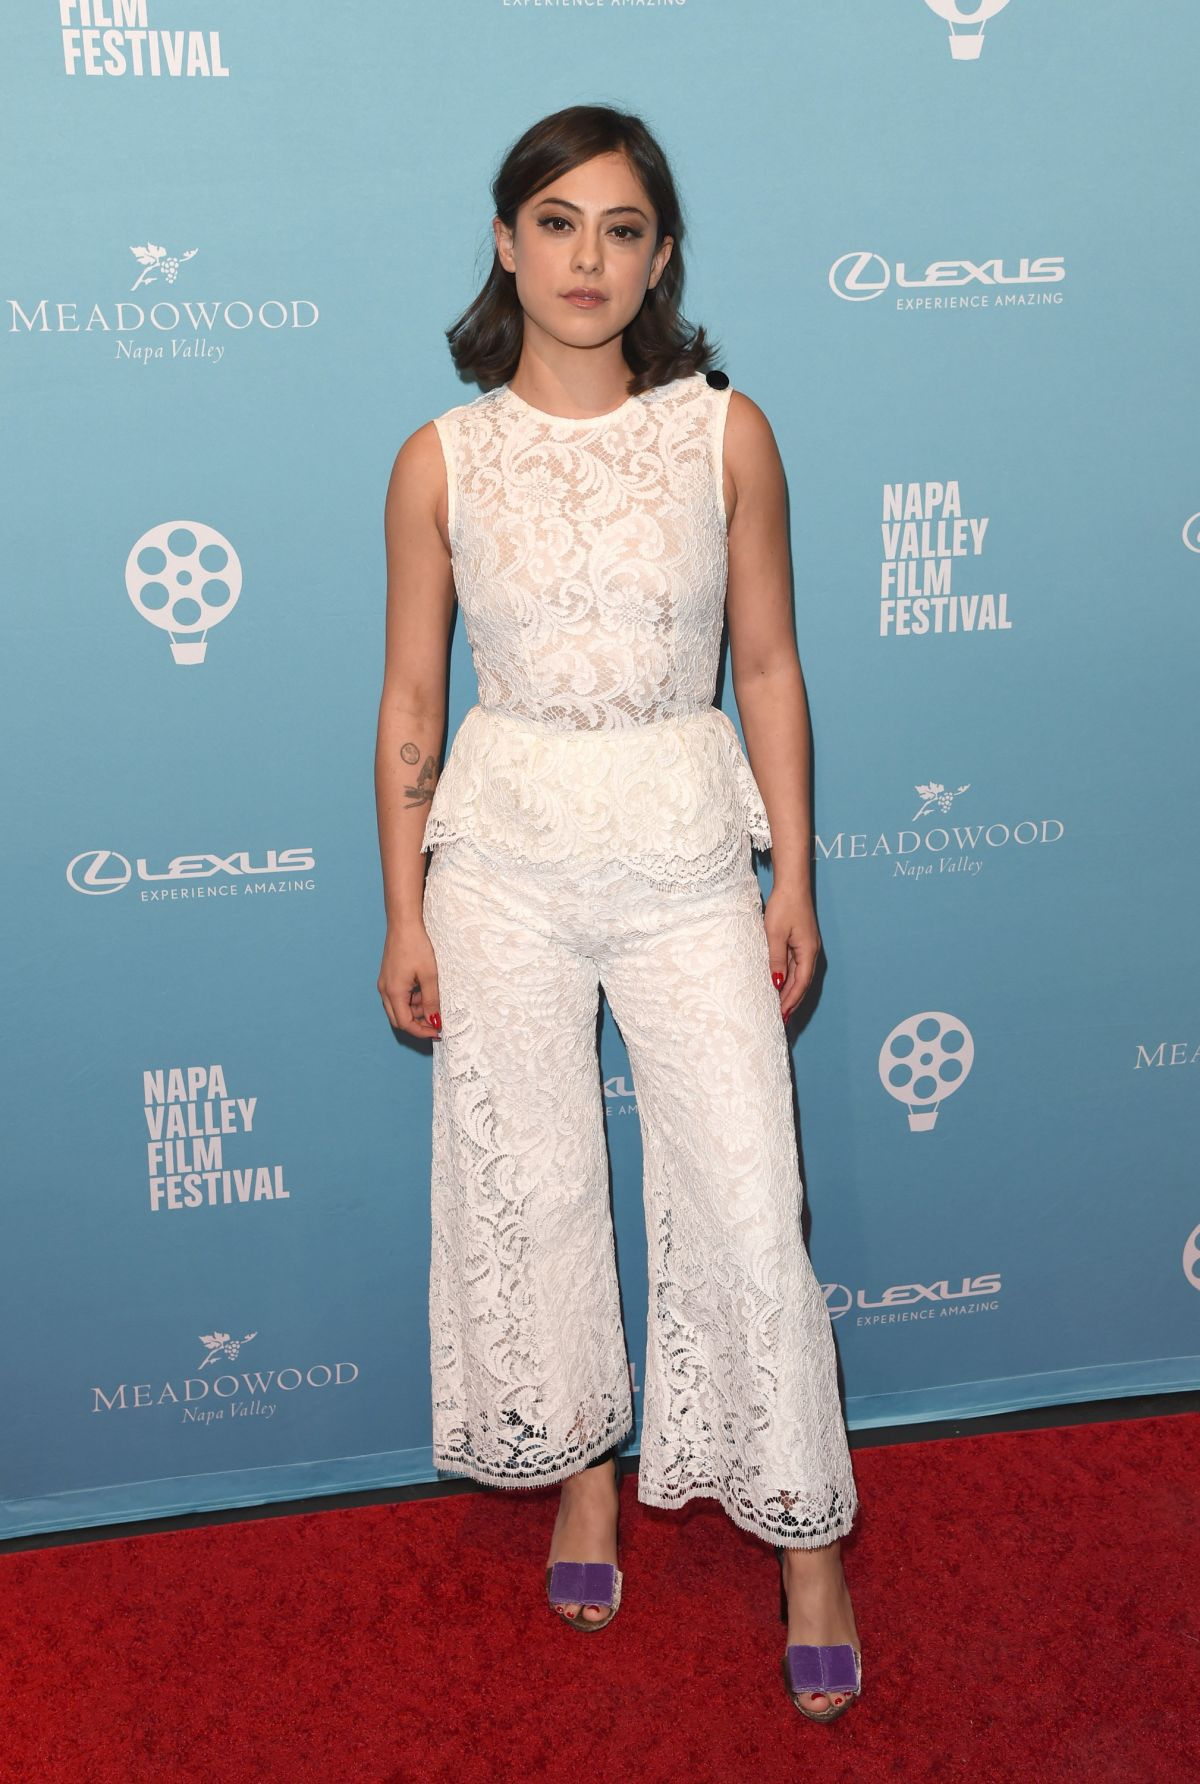 825f7253c Rosa Salazar At The 8th Annual Napa Valley Film Festival - Celebzz